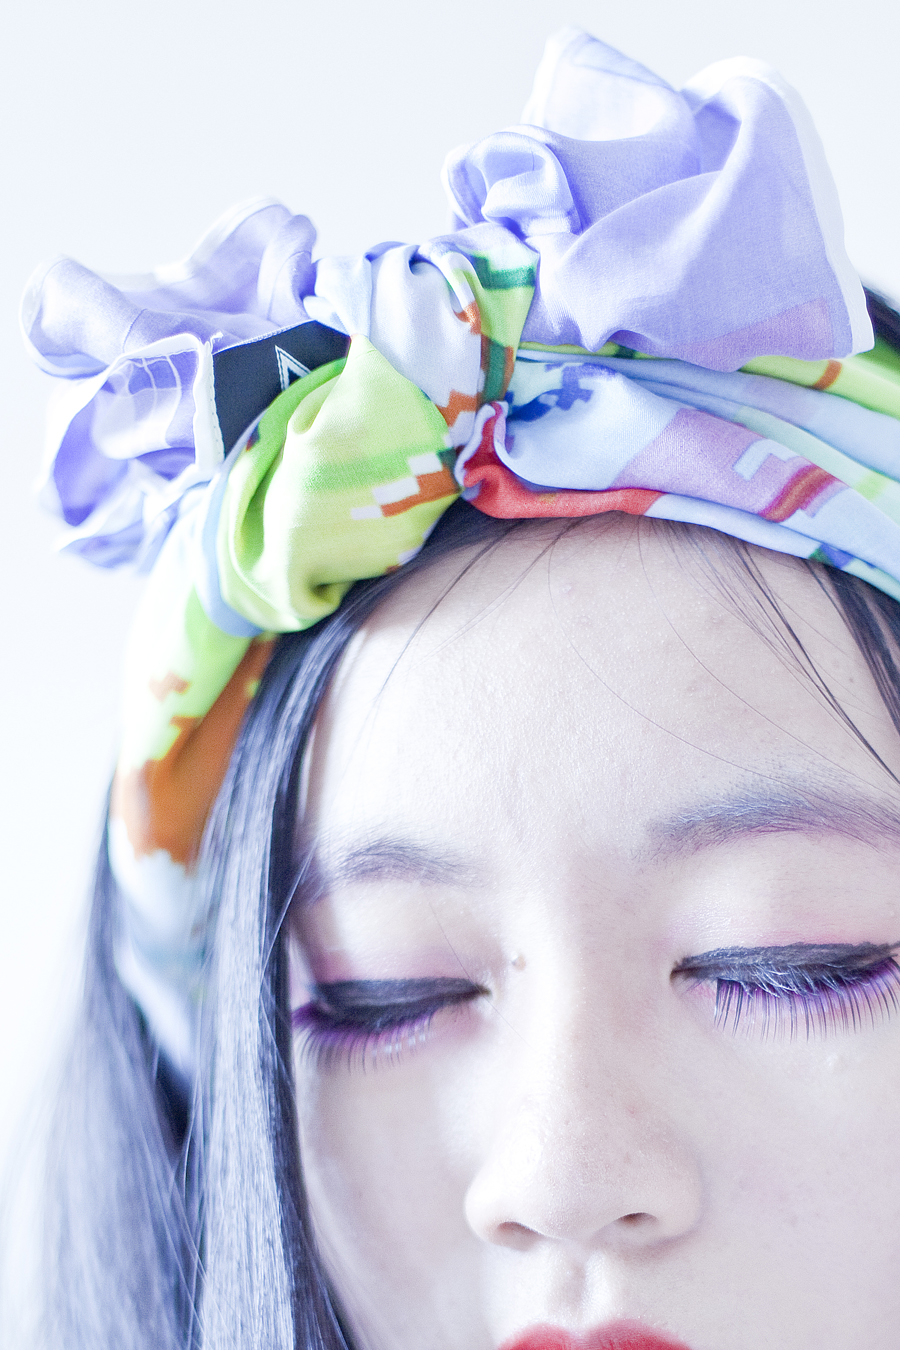 Self portrait outfit details: RV Designs Duck Hunt 100% Habutai silk scarf, K-Palette eyeliner and eyelash glue.